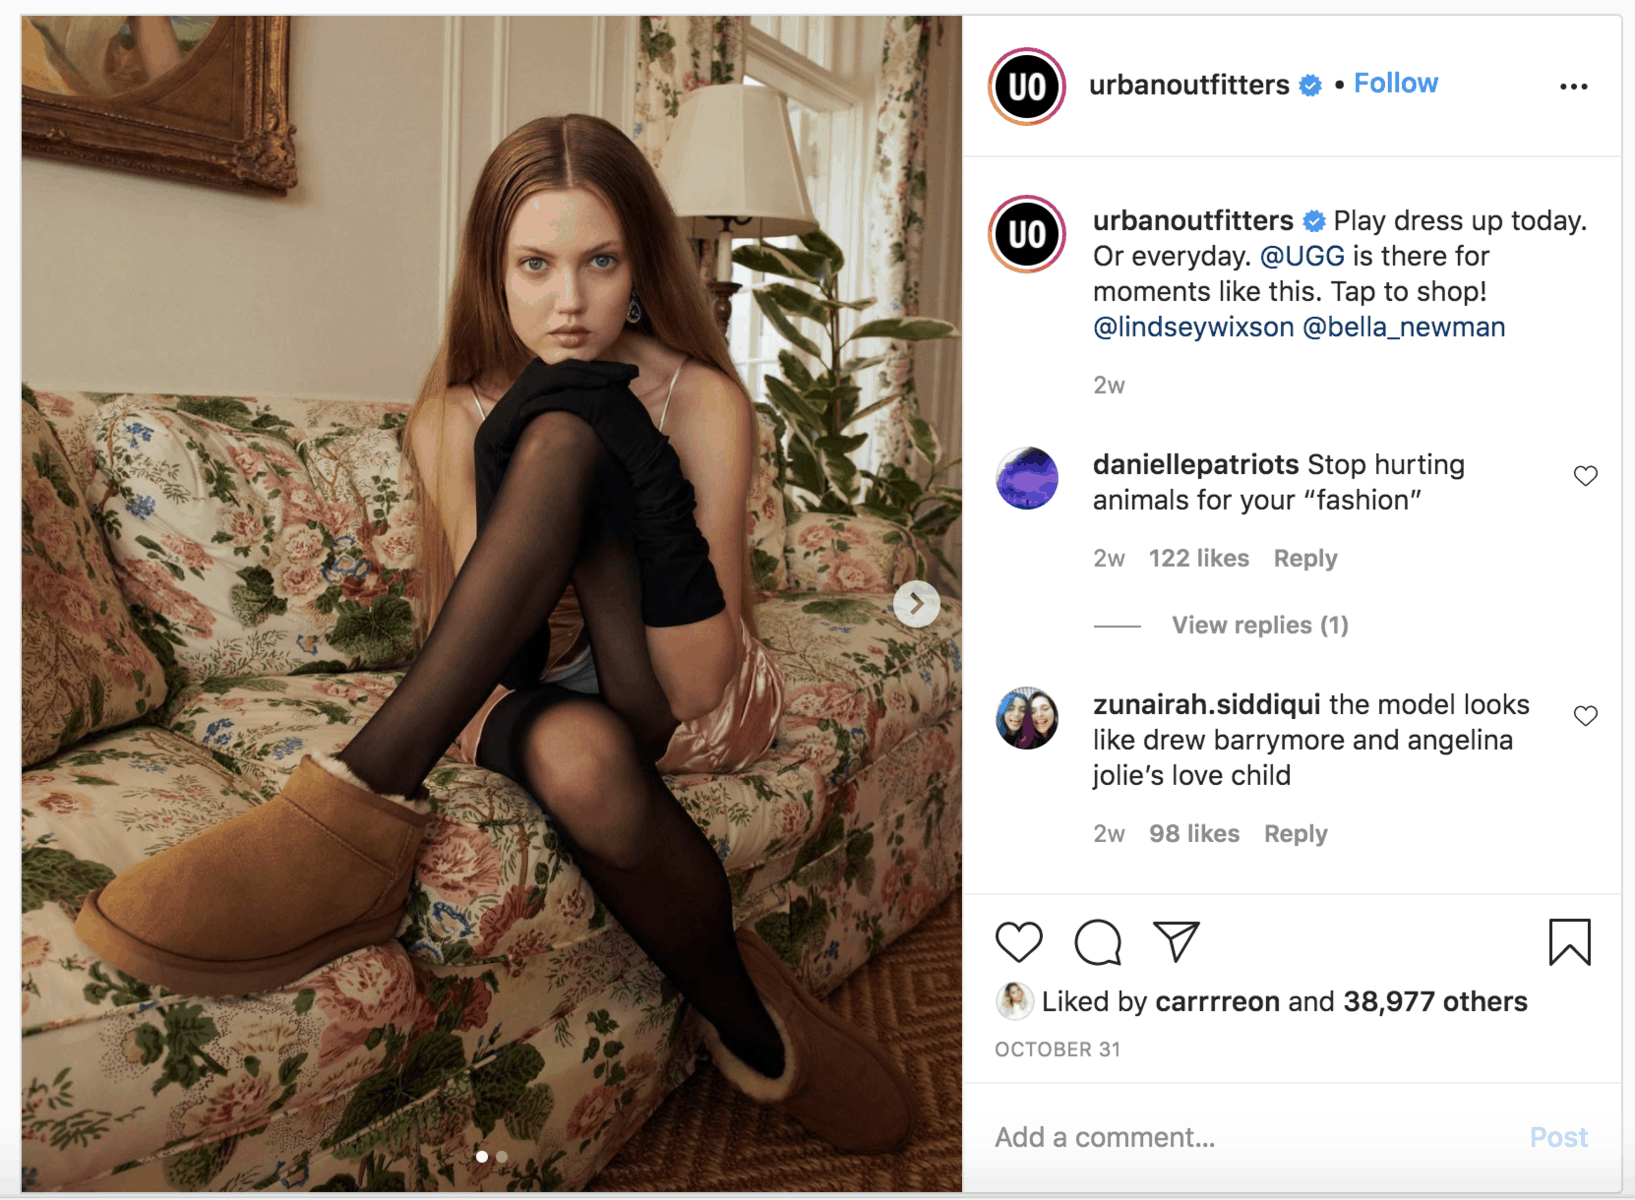 Urban Outfitters Instagram